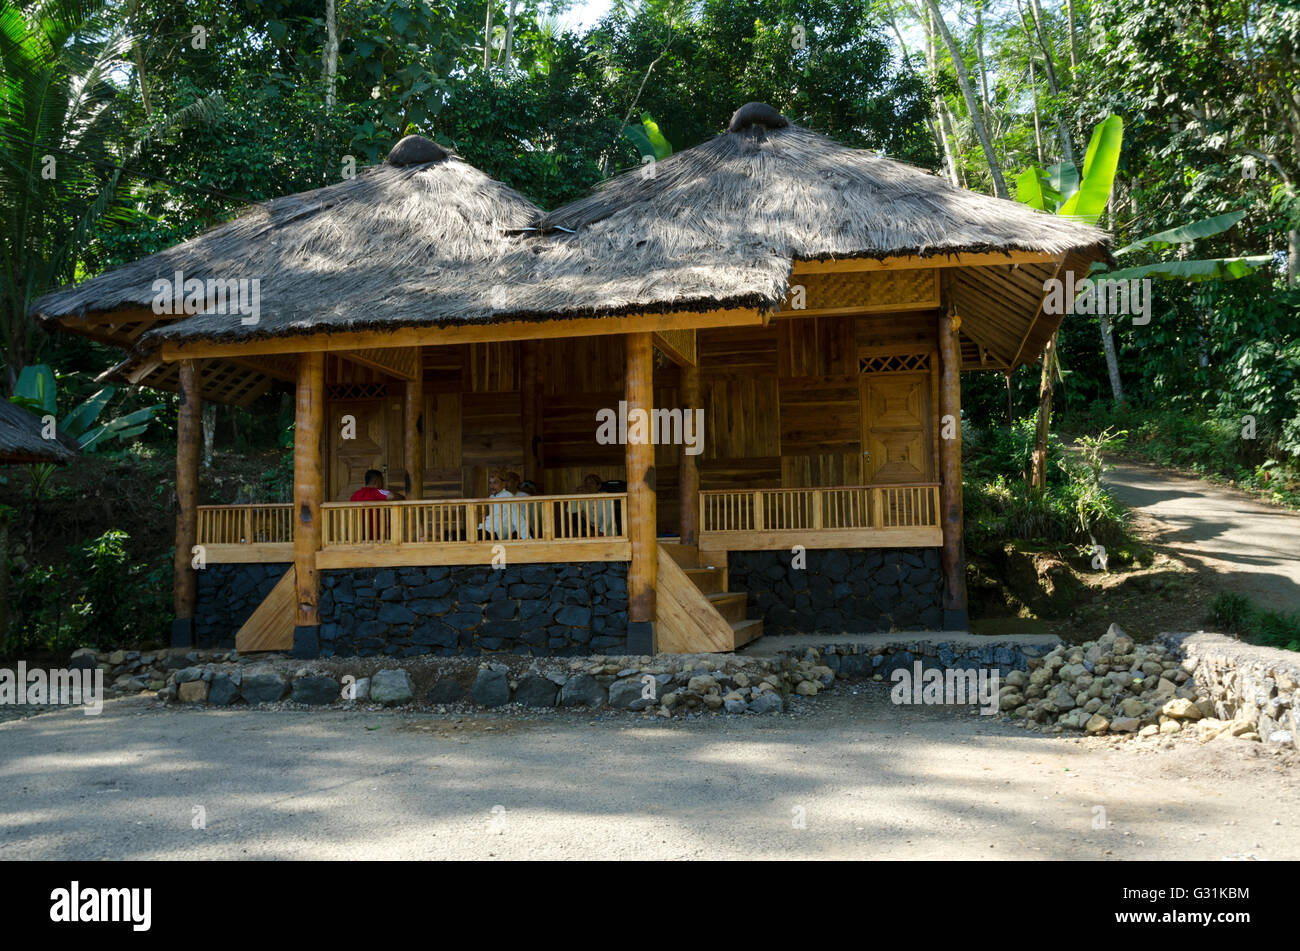 Custom homes stock photos custom homes stock images alamy kampung kuta traditional sundanese village stock image malvernweather Image collections